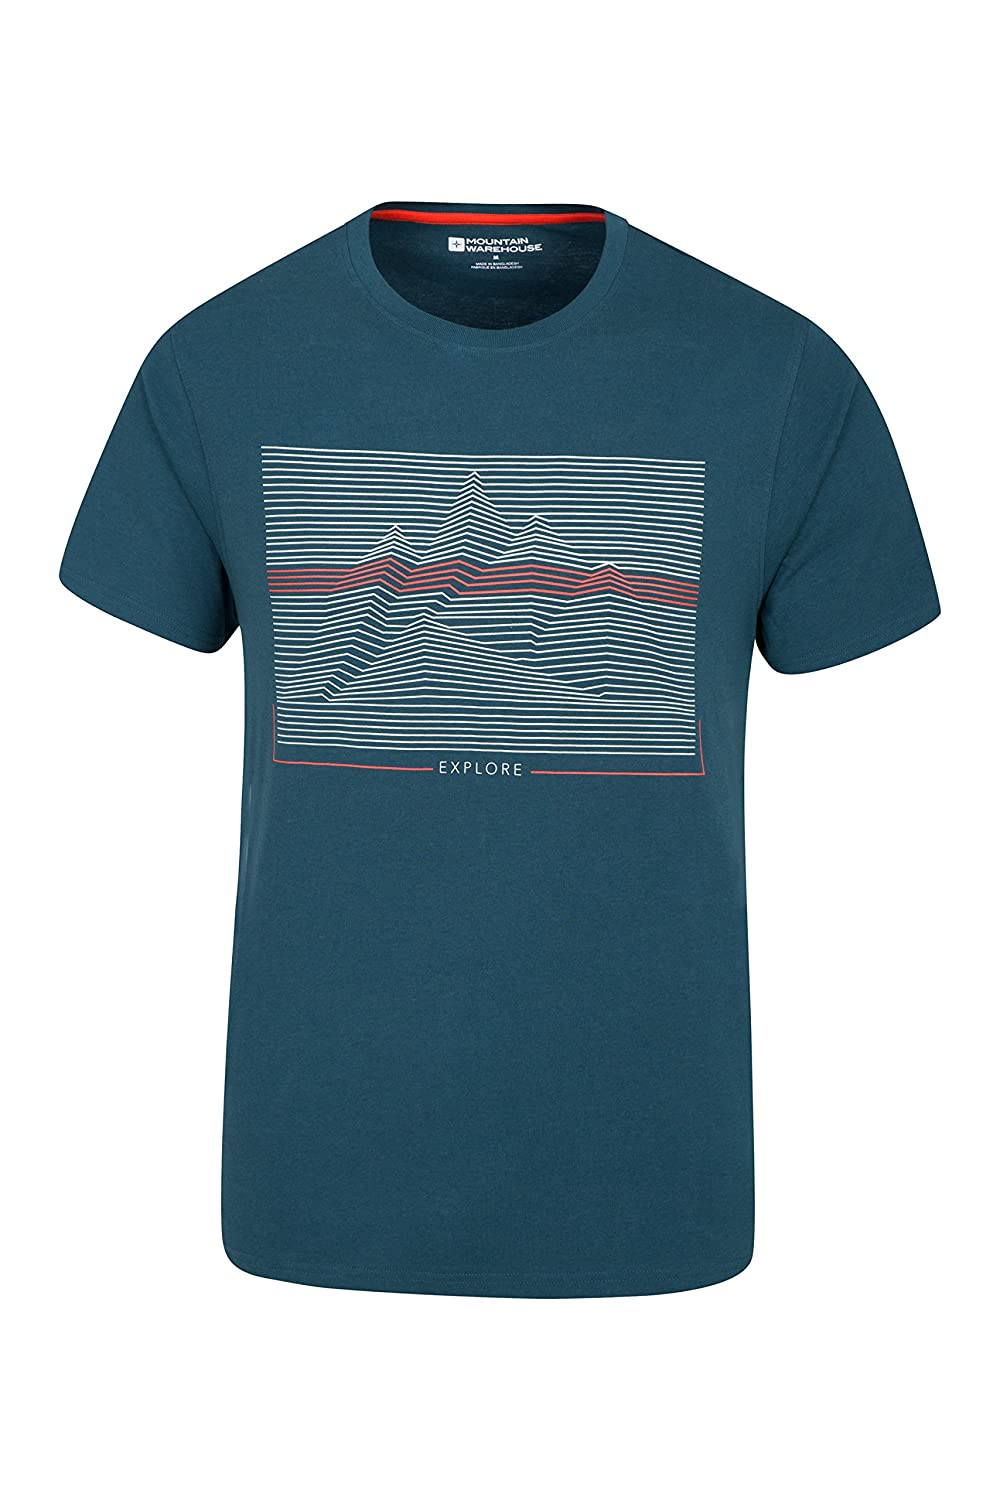 Mountain Warehouse Linear Mountain Mens Tee - Lightweight, Breathable Summer Tshirt, Quick Drying Undershirt, Quick Wick, Easy to Pack Top - for Spring Travelling & Gym